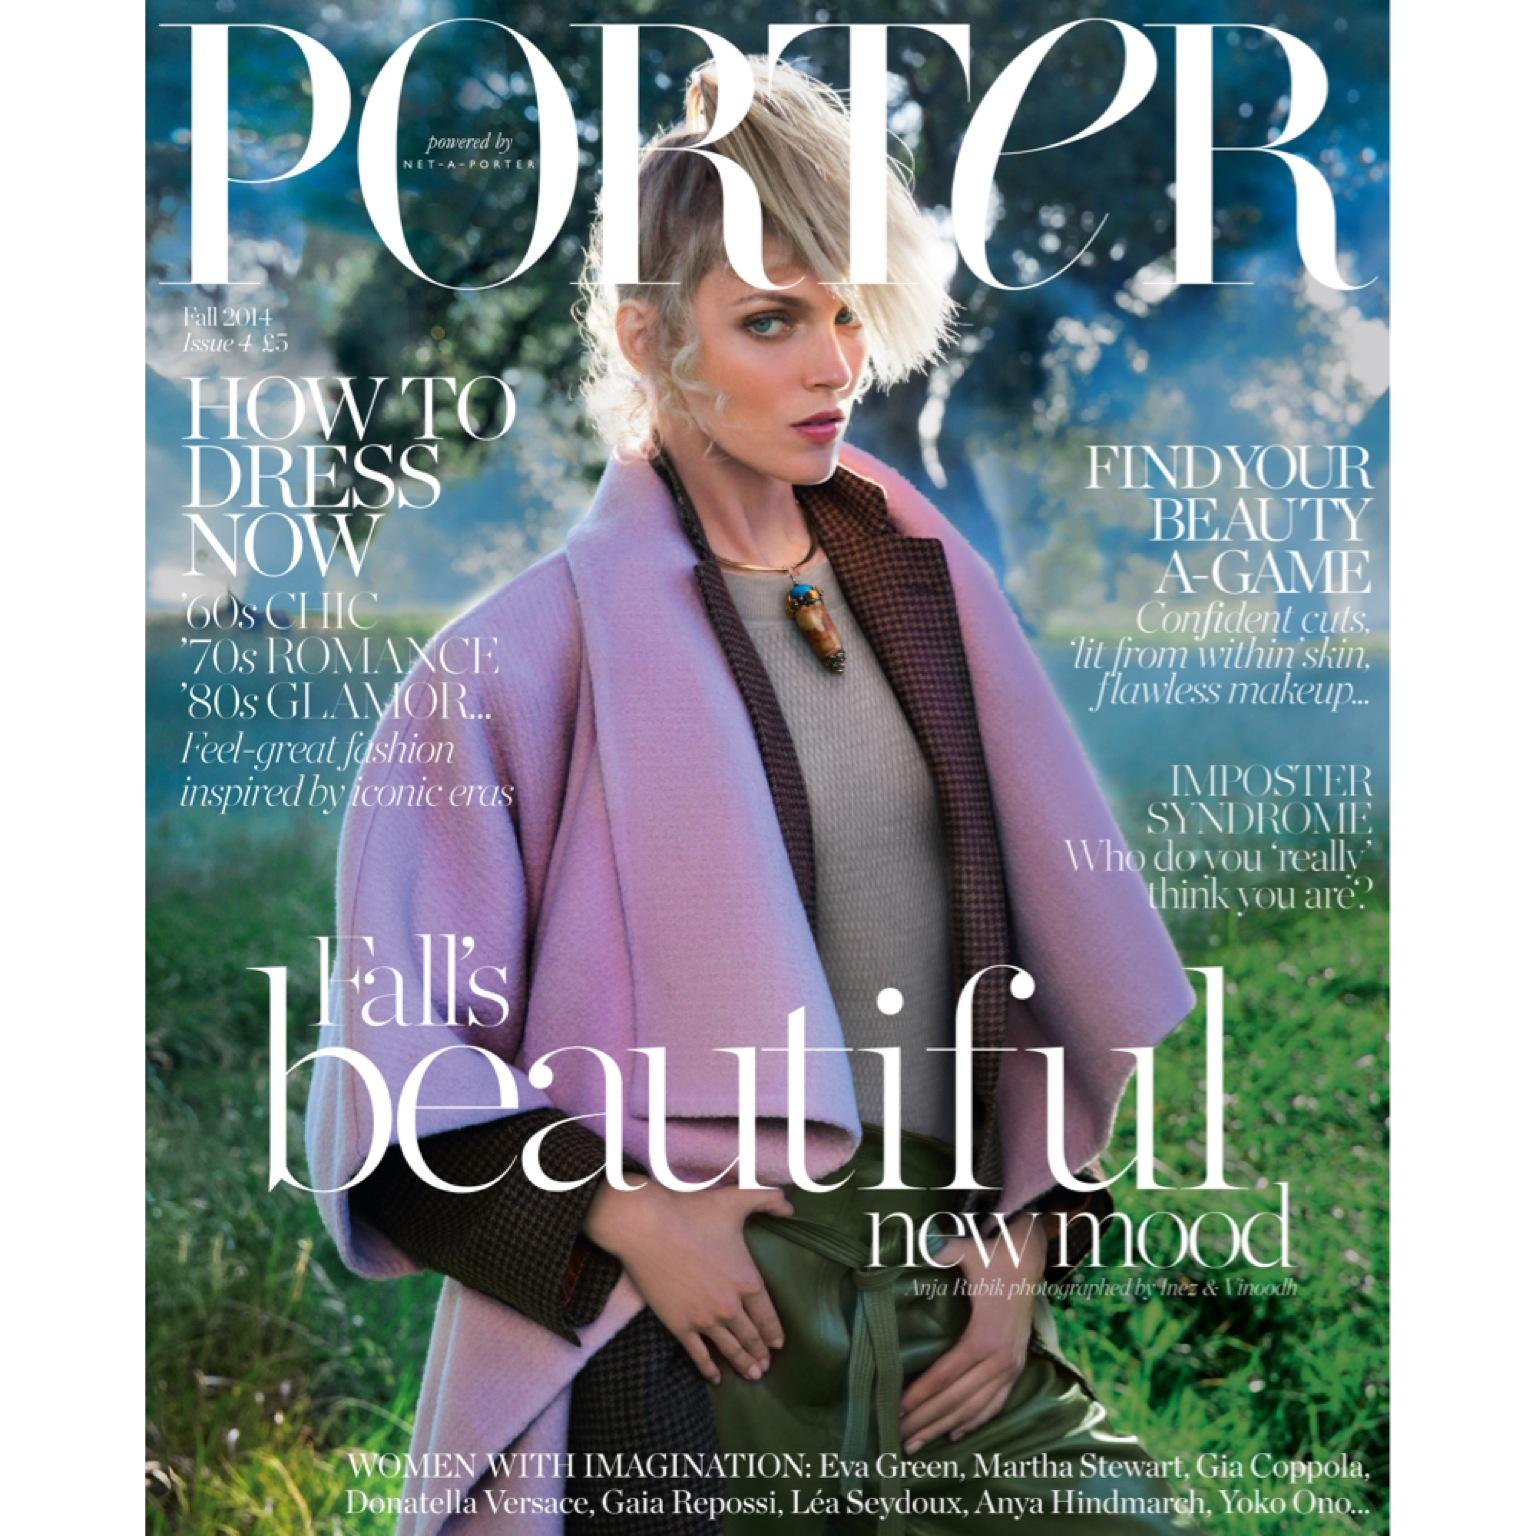 RT @PORTERmagazine: COVER REVEAL: The enigmatic @anjarubikblog leads #PORTERmagazine issue 4, available from Friday, August 1. http://t.co/…